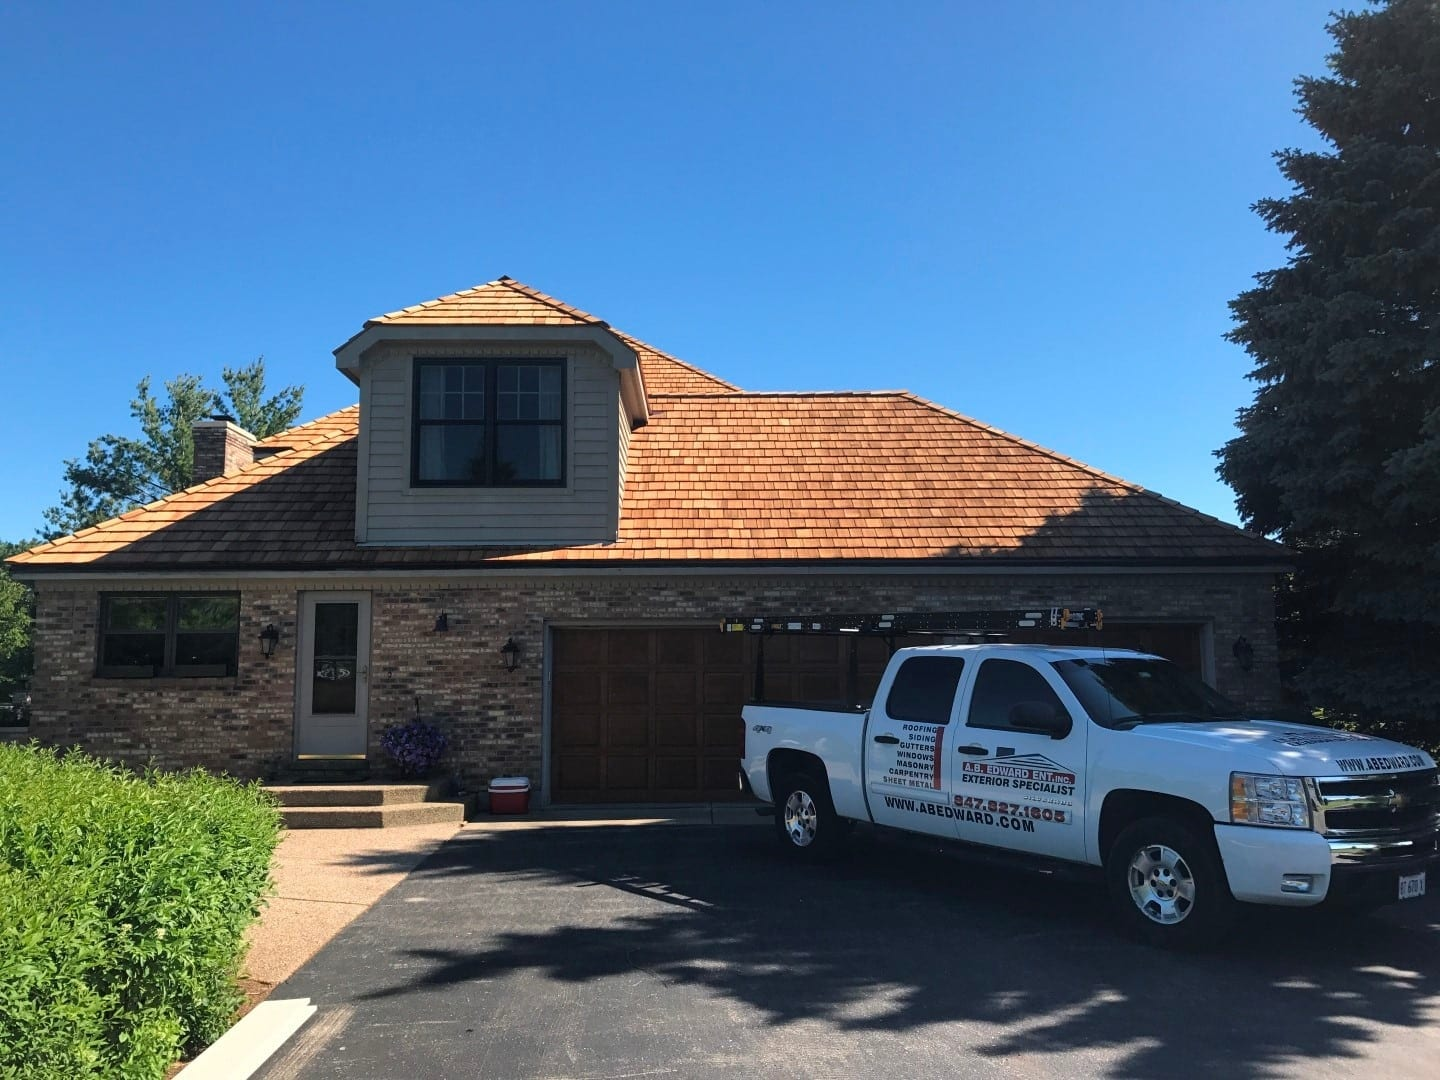 Roof repair or replacement? Well it depends on the damage...